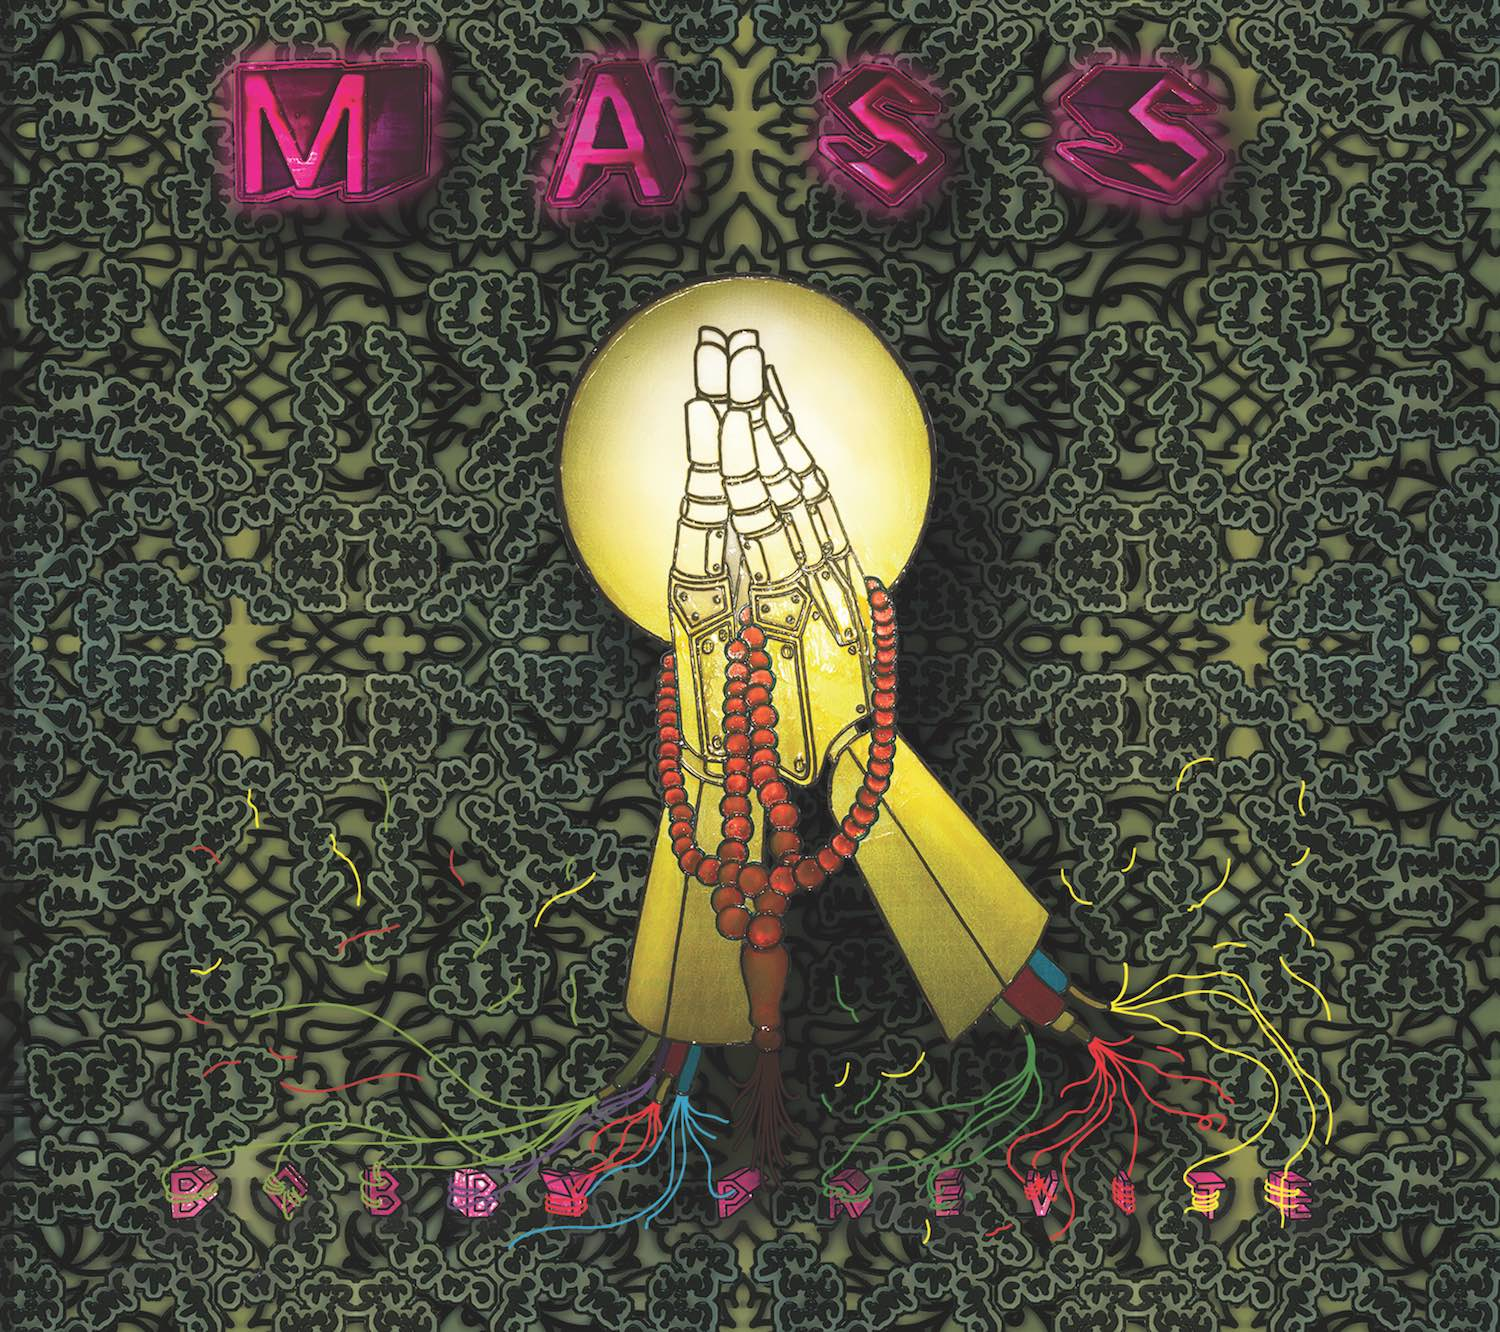 MASS:   doom metal meets Dufay   feat. members of SUNN O))), EARTH, and the ROSE ENSEMBLE